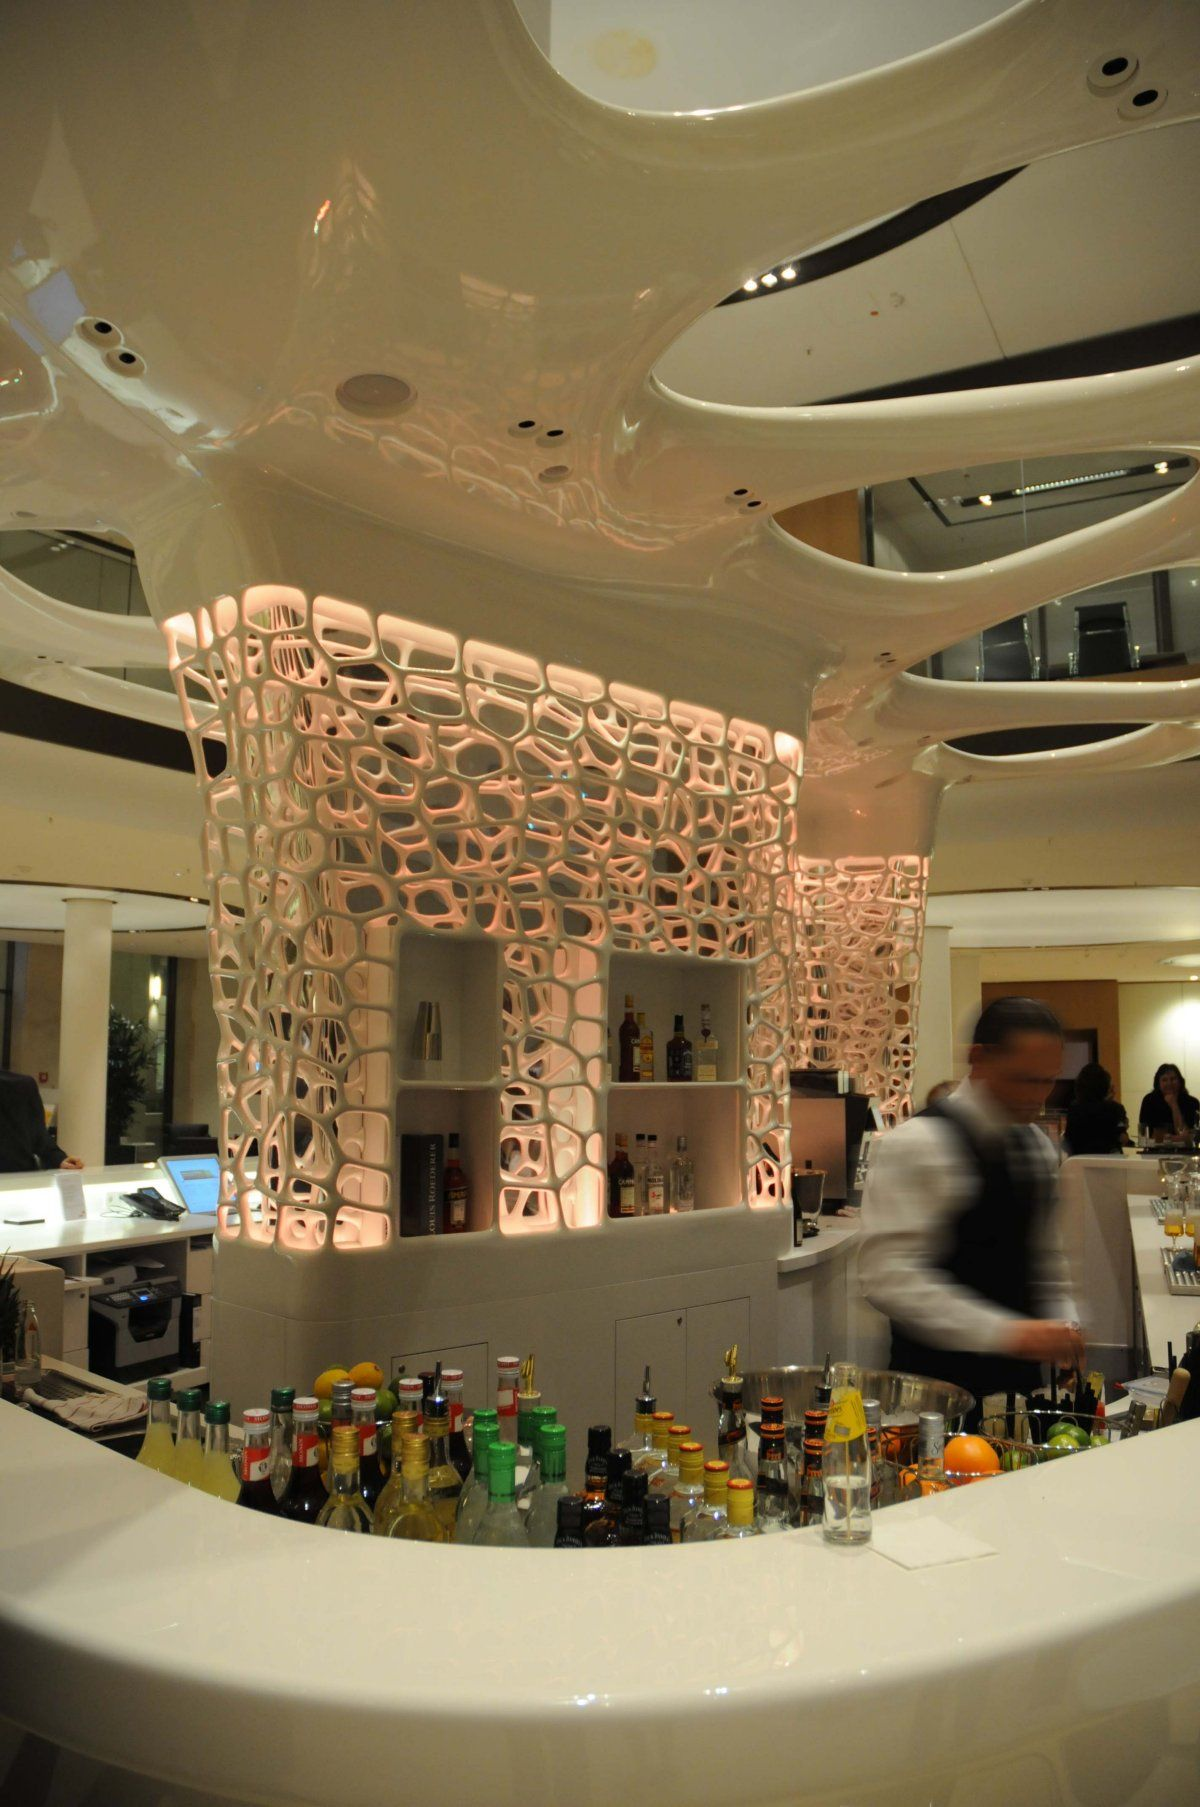 Design By Joi Design Pwc Cafe Bar Desk Futuristic Design